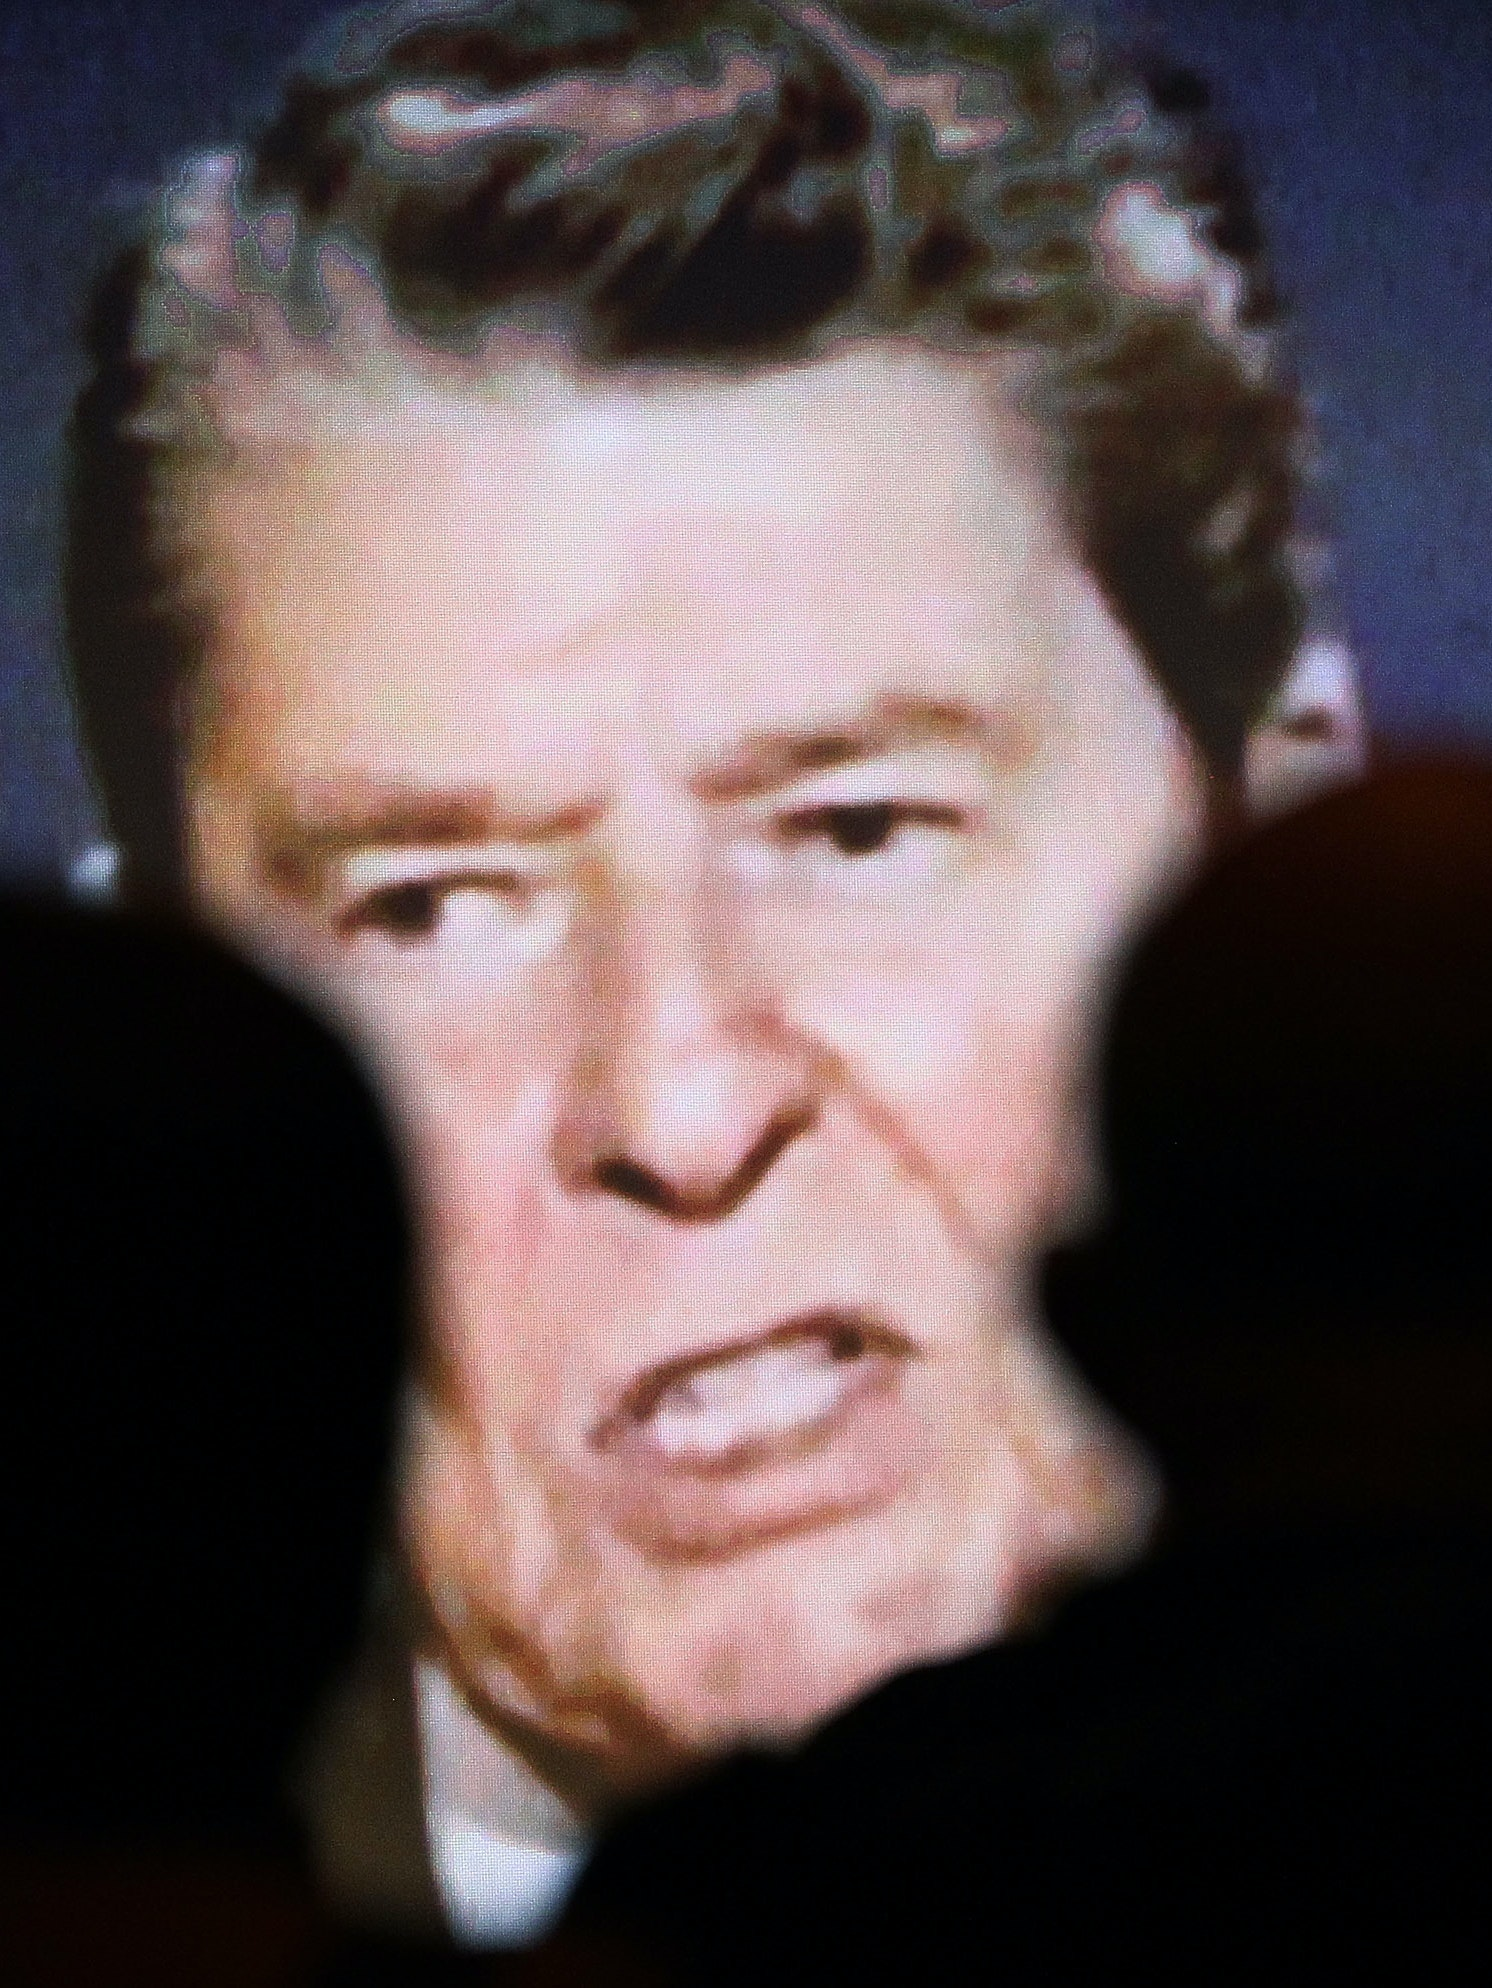 ronald reagan evil empire speech Undoing the evil empire: how reagan won the cold war univ press of america dowling, r  ronald reagan and the speech: the rhetoric of public relations politics.